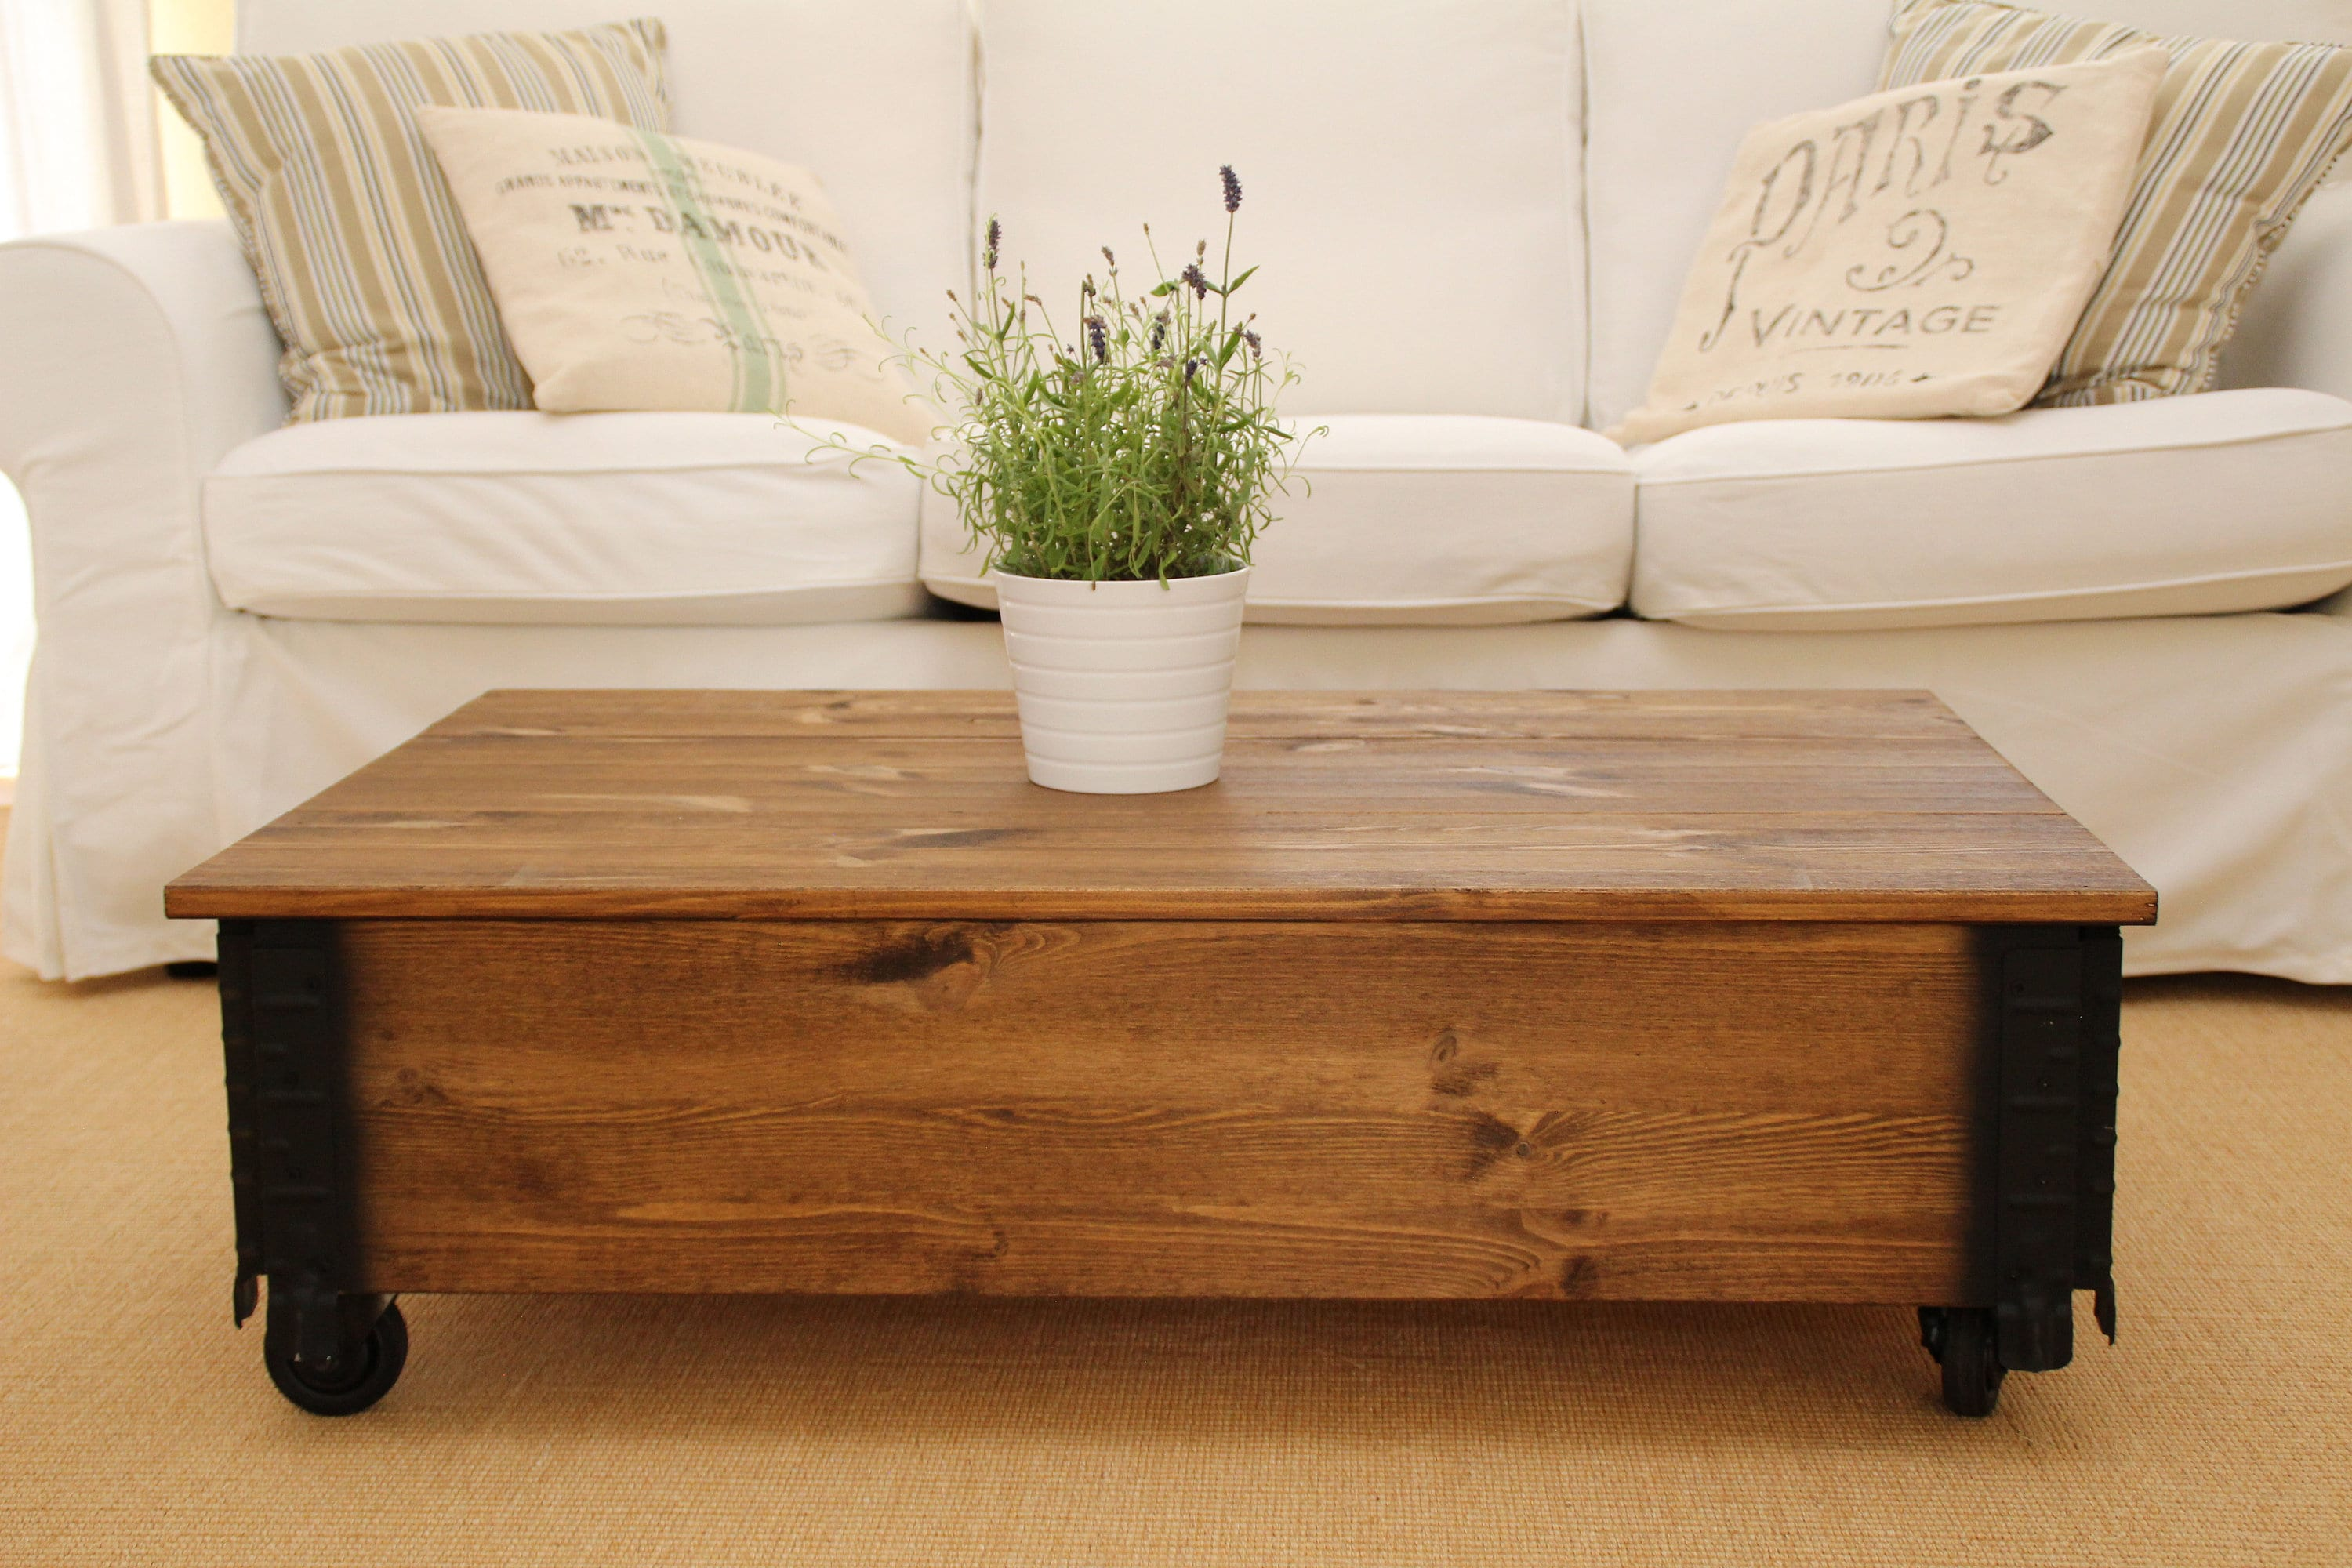 Dawanda Couchtisch Vintage Coffee Table Chest Wooden Box Vintage Shabby Chic